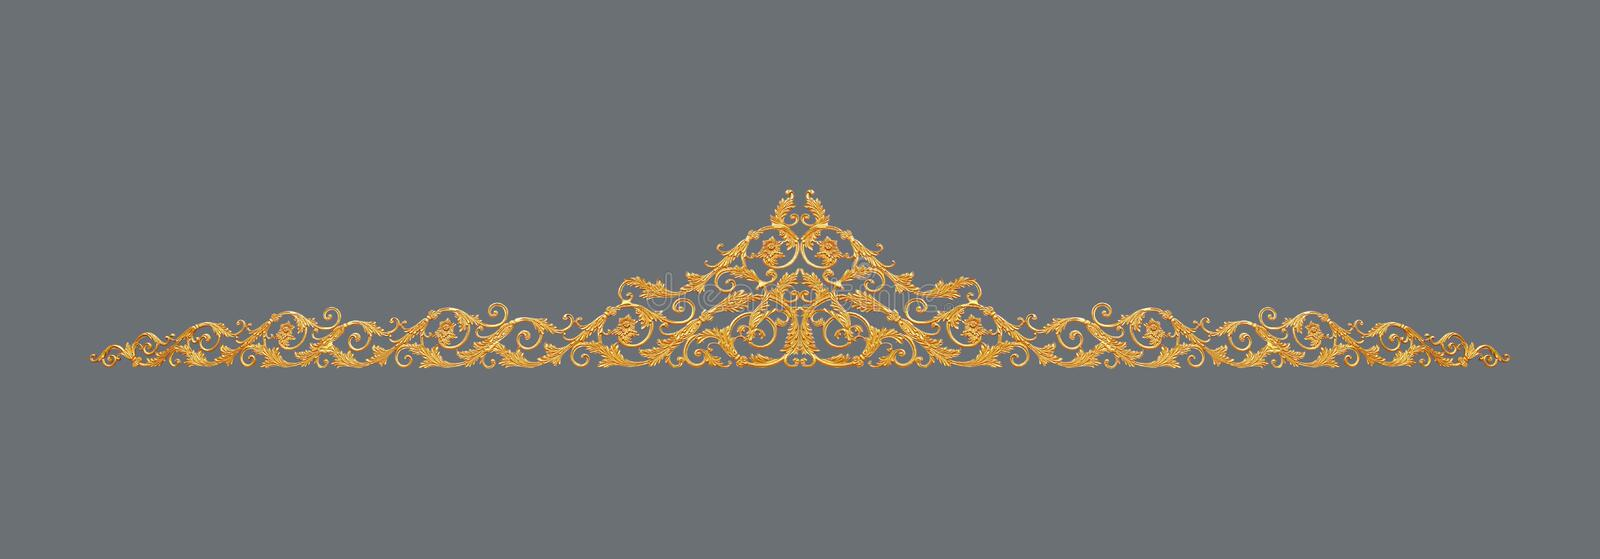 Ornament of gold plated vintage floral ,victorian Style. The Ornament of gold plated vintage floral ,victorian Style stock image